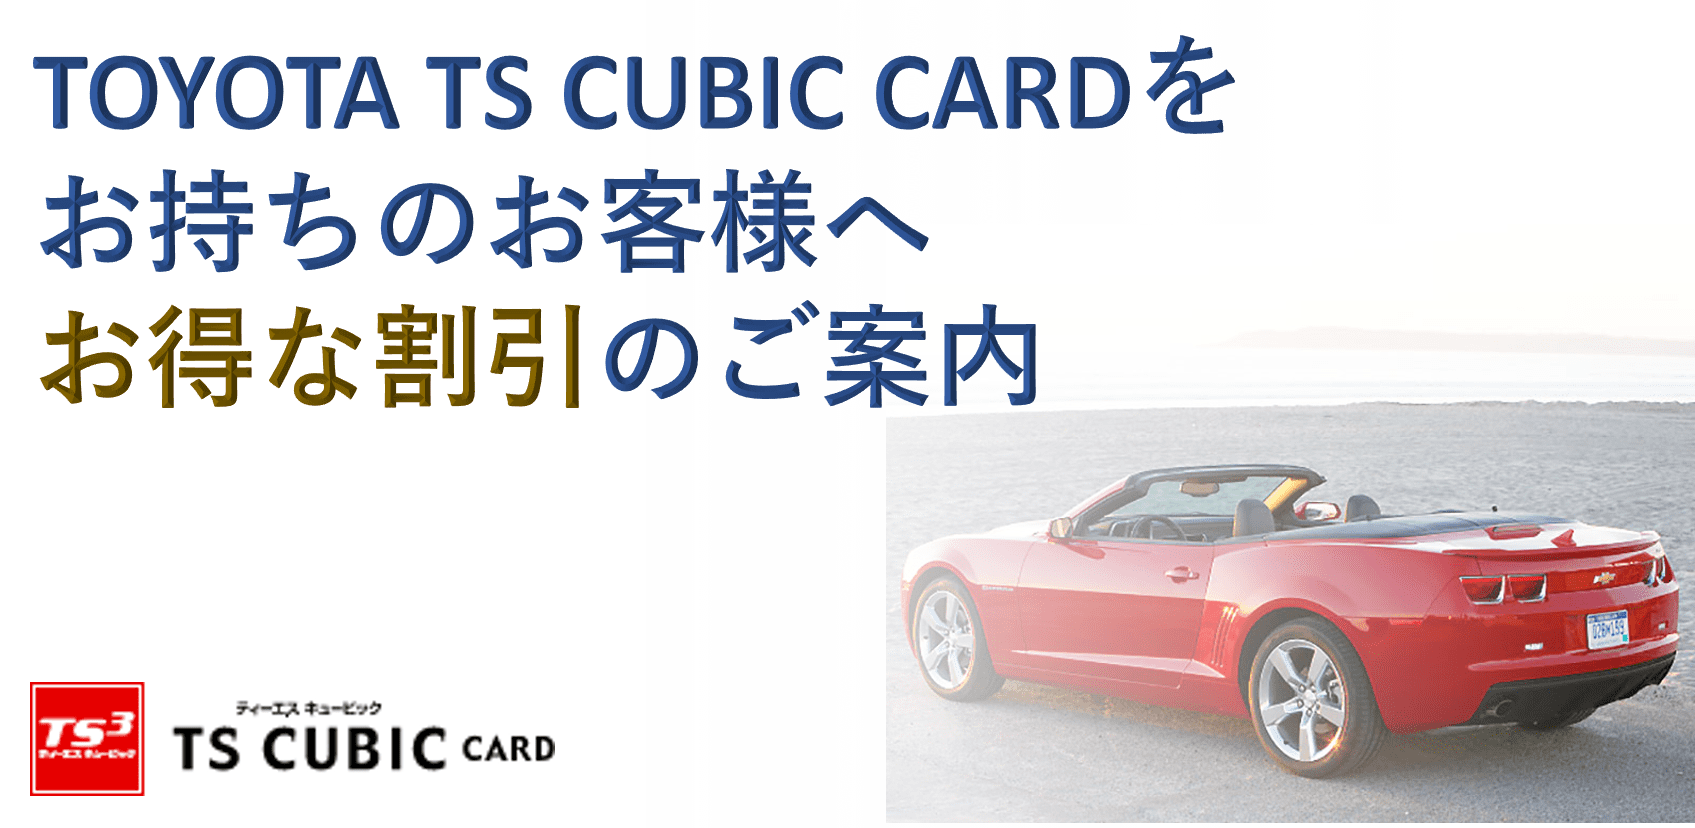 Do you have TS Cubic Card issued in Japan?